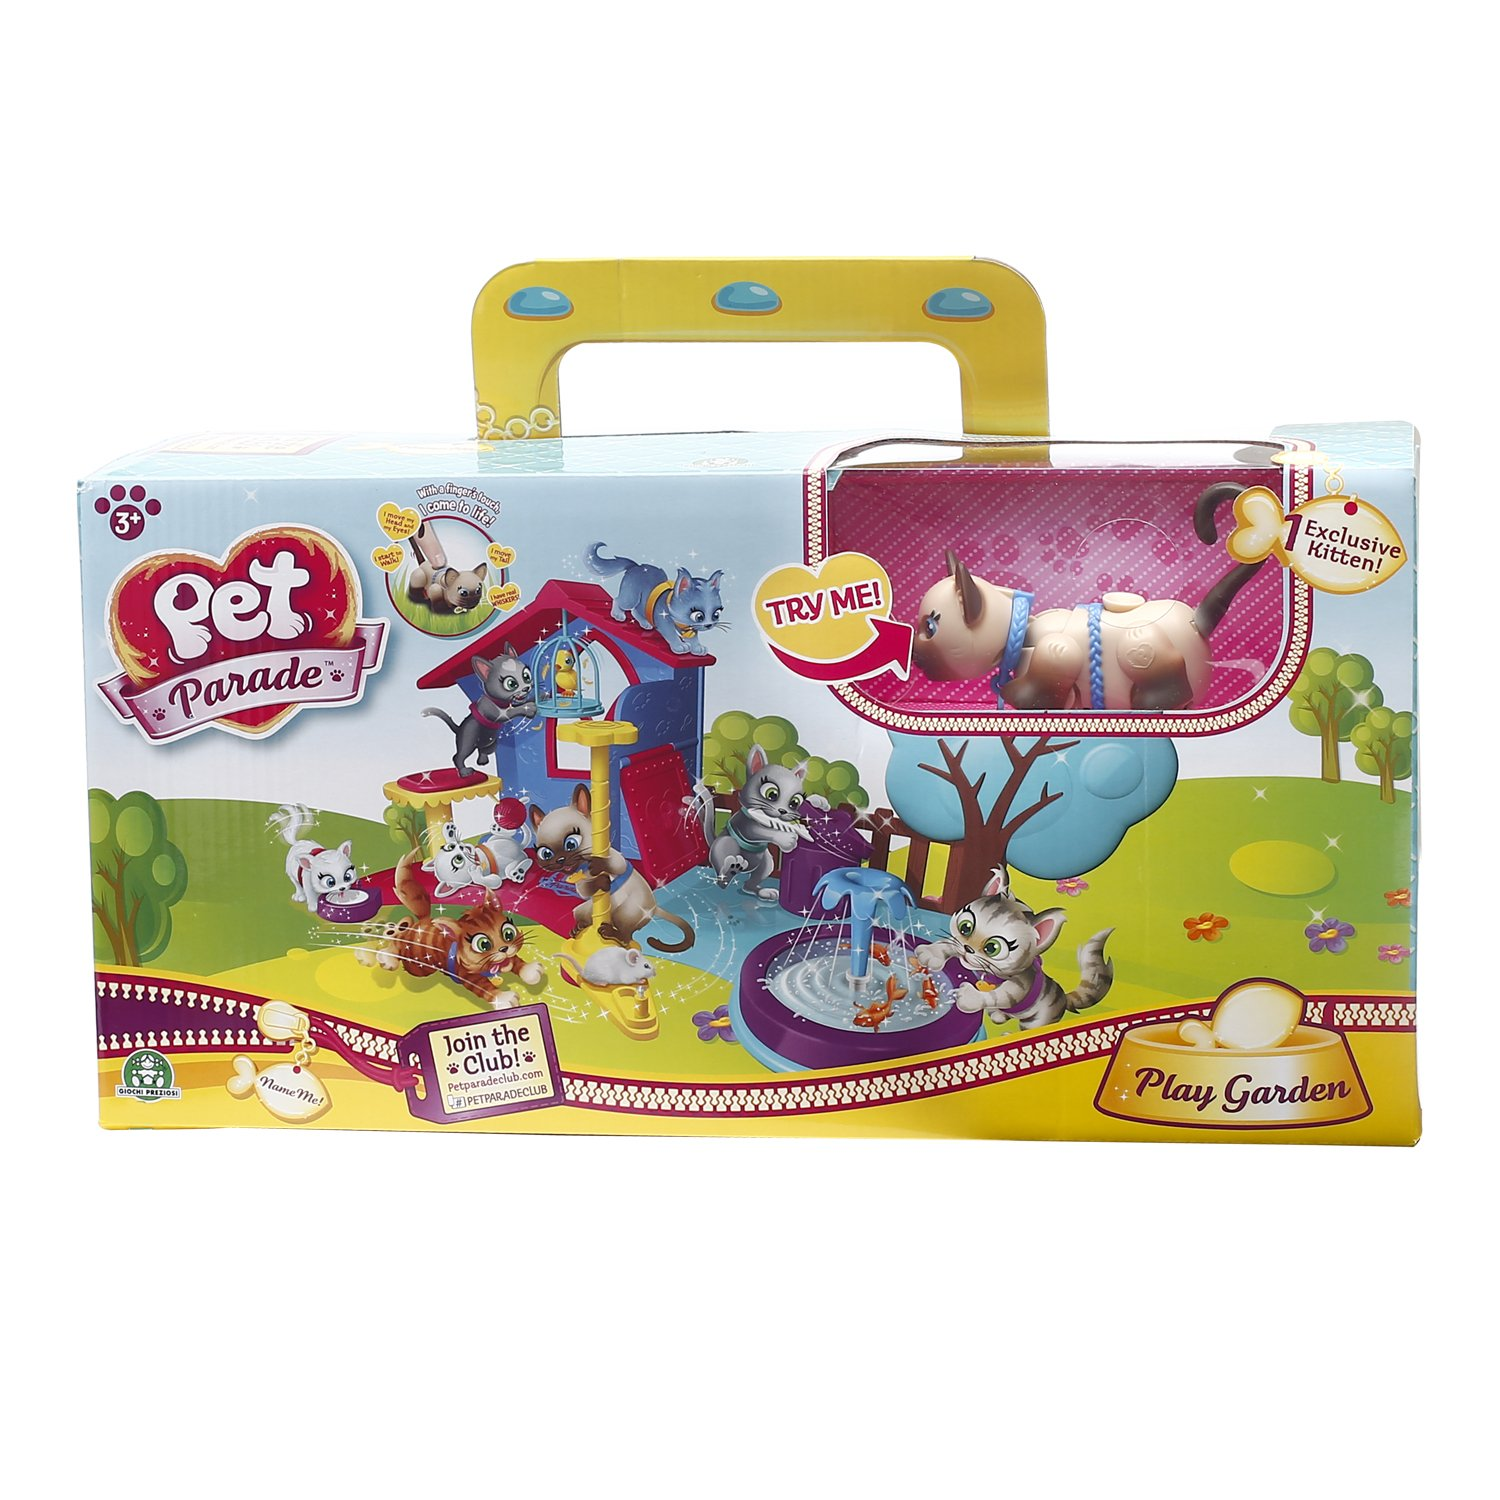 Pet Parade Play Garden Playset for Kittens